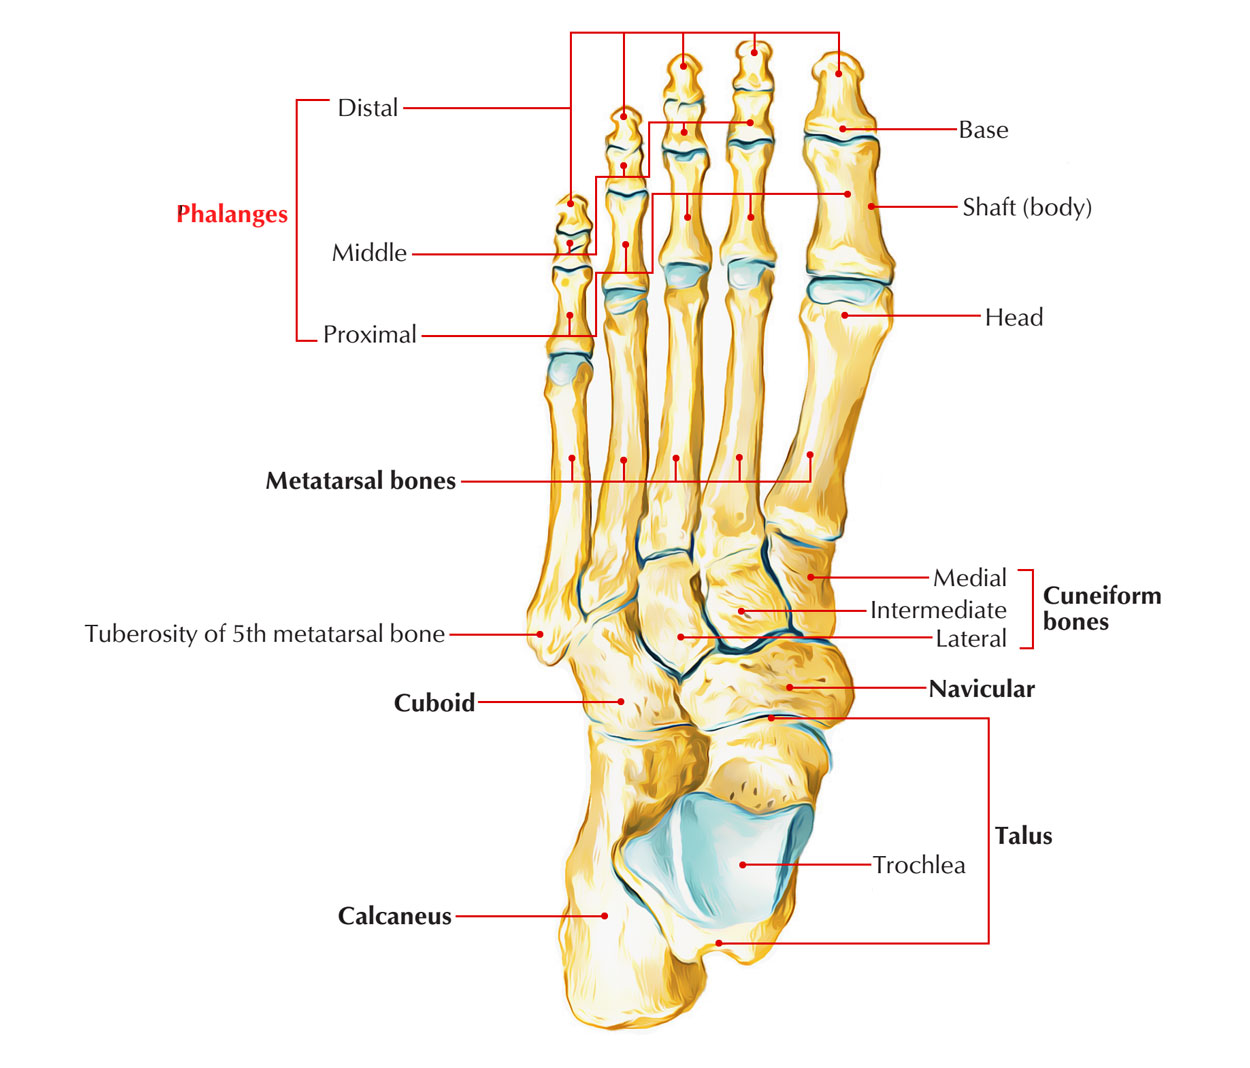 Skeleton of the Foot: Phalangeal Bones